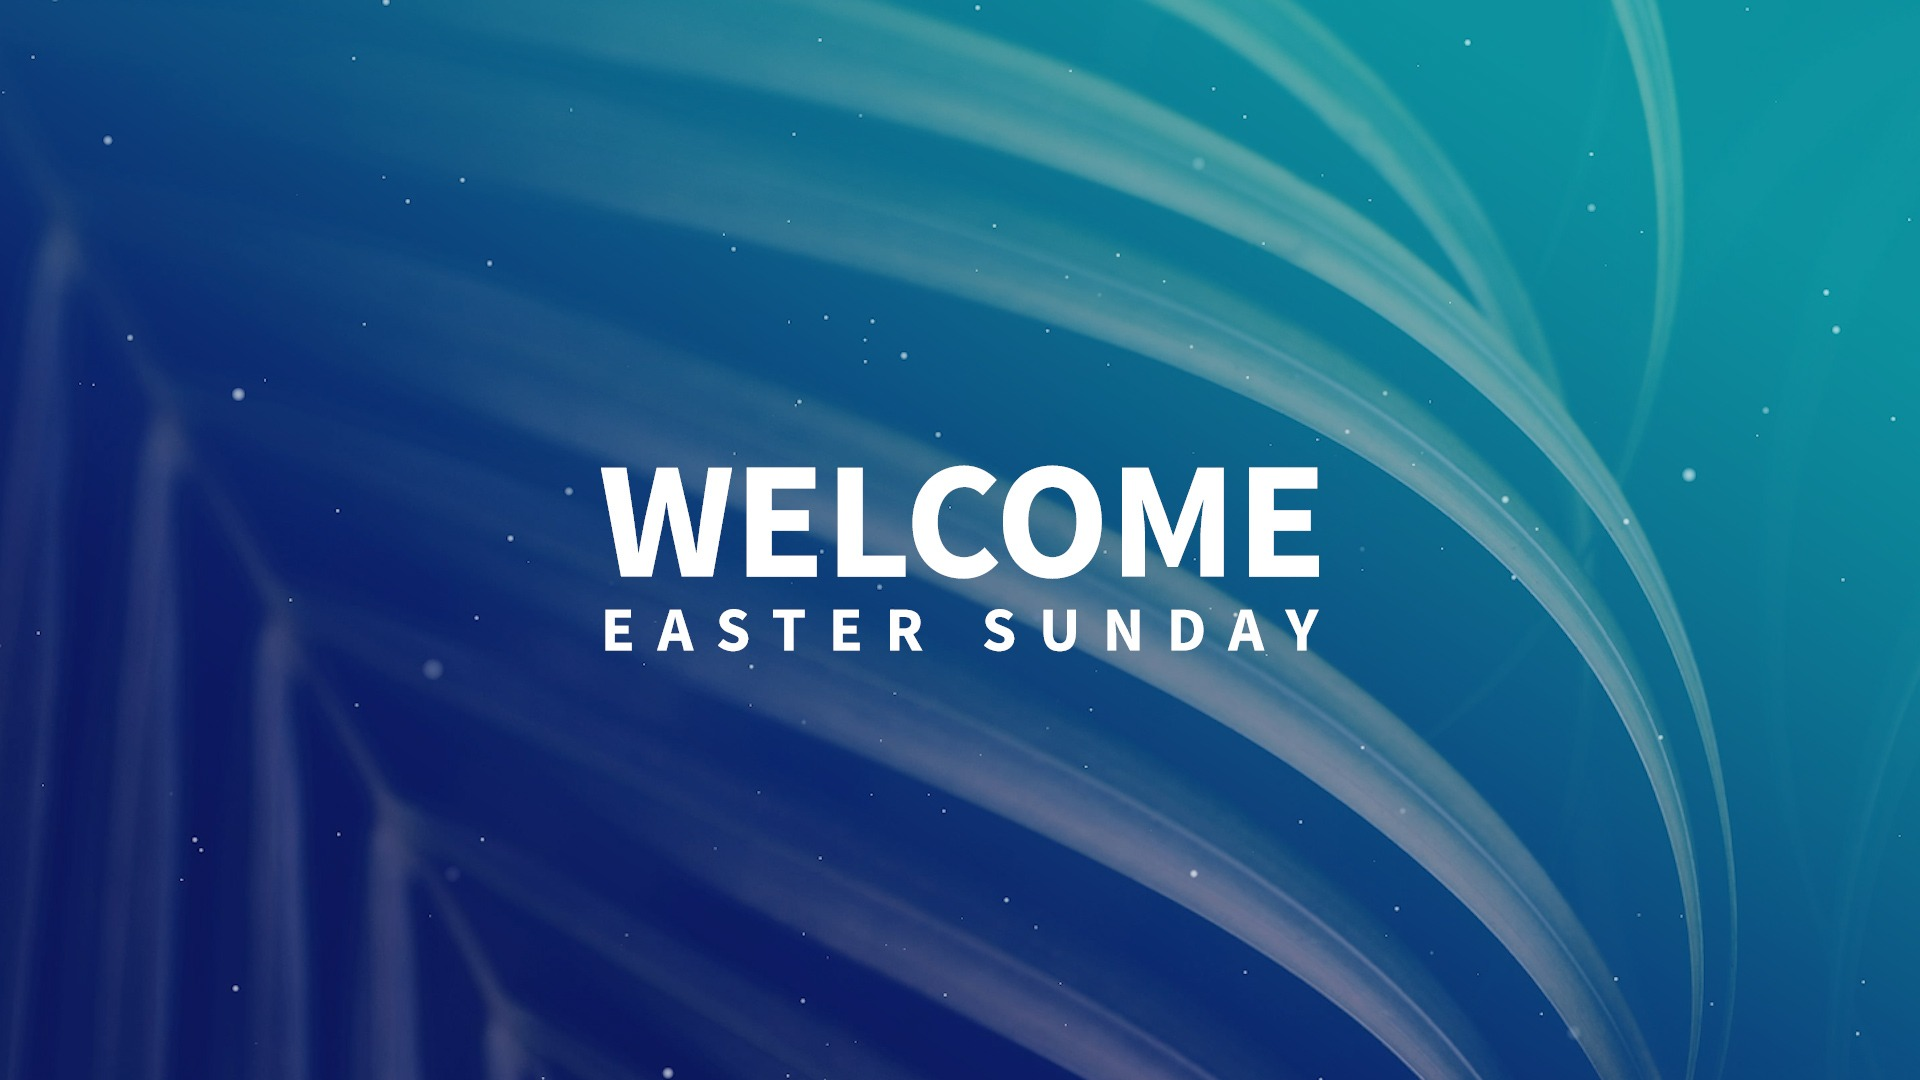 Easter Media Slides and Video Loops